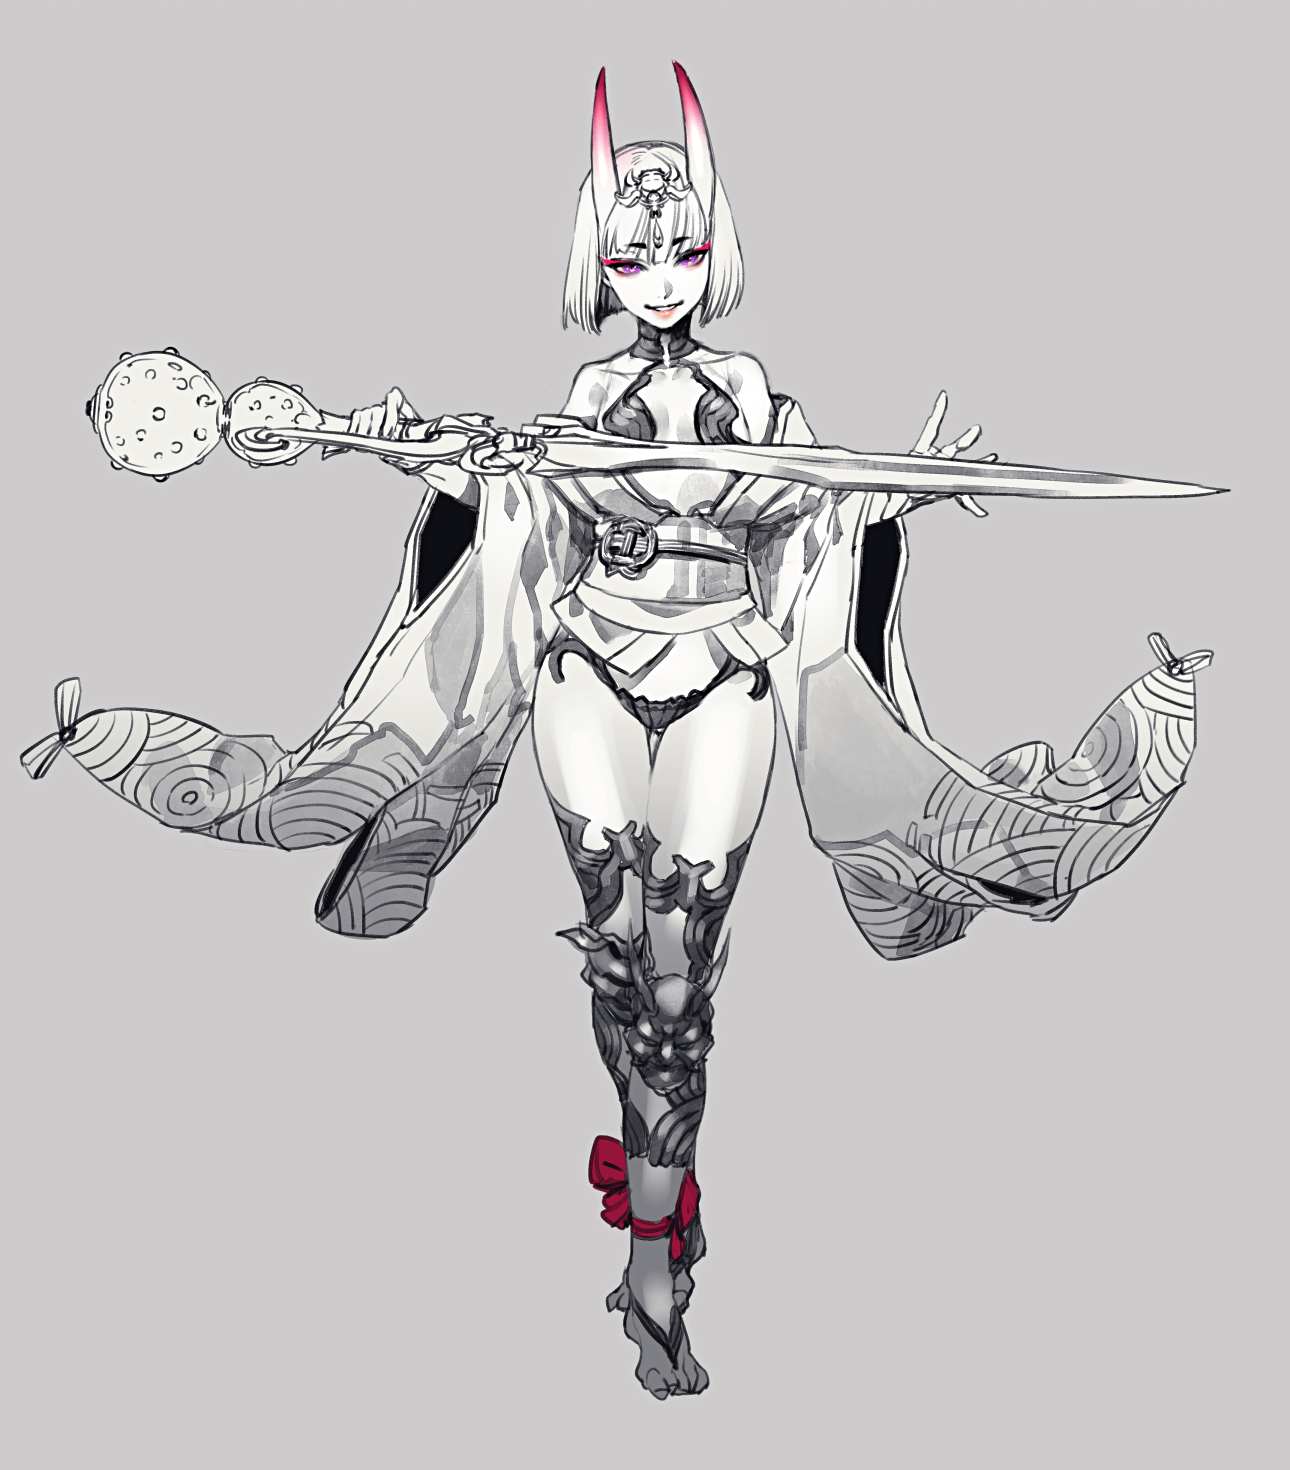 1girl armor bangs bare_shoulders barefoot blunt_bangs bob_cut breasts diadem eyebrows_visible_through_hair fate/grand_order fate_(series) full_body gem grey_background greyscale highres holding holding_sword holding_weapon horns japanese_clothes kimono knee_pads legband lipstick looking_at_viewer makeup monochrome obi off_shoulder oni_horns parted_lips pink_lips pink_lipstick sash short_eyebrows short_hair shuten_douji_(fate/grand_order) simple_background small_breasts smile solo spot_color standing sword thigh_gap violet_eyes weapon yosi135